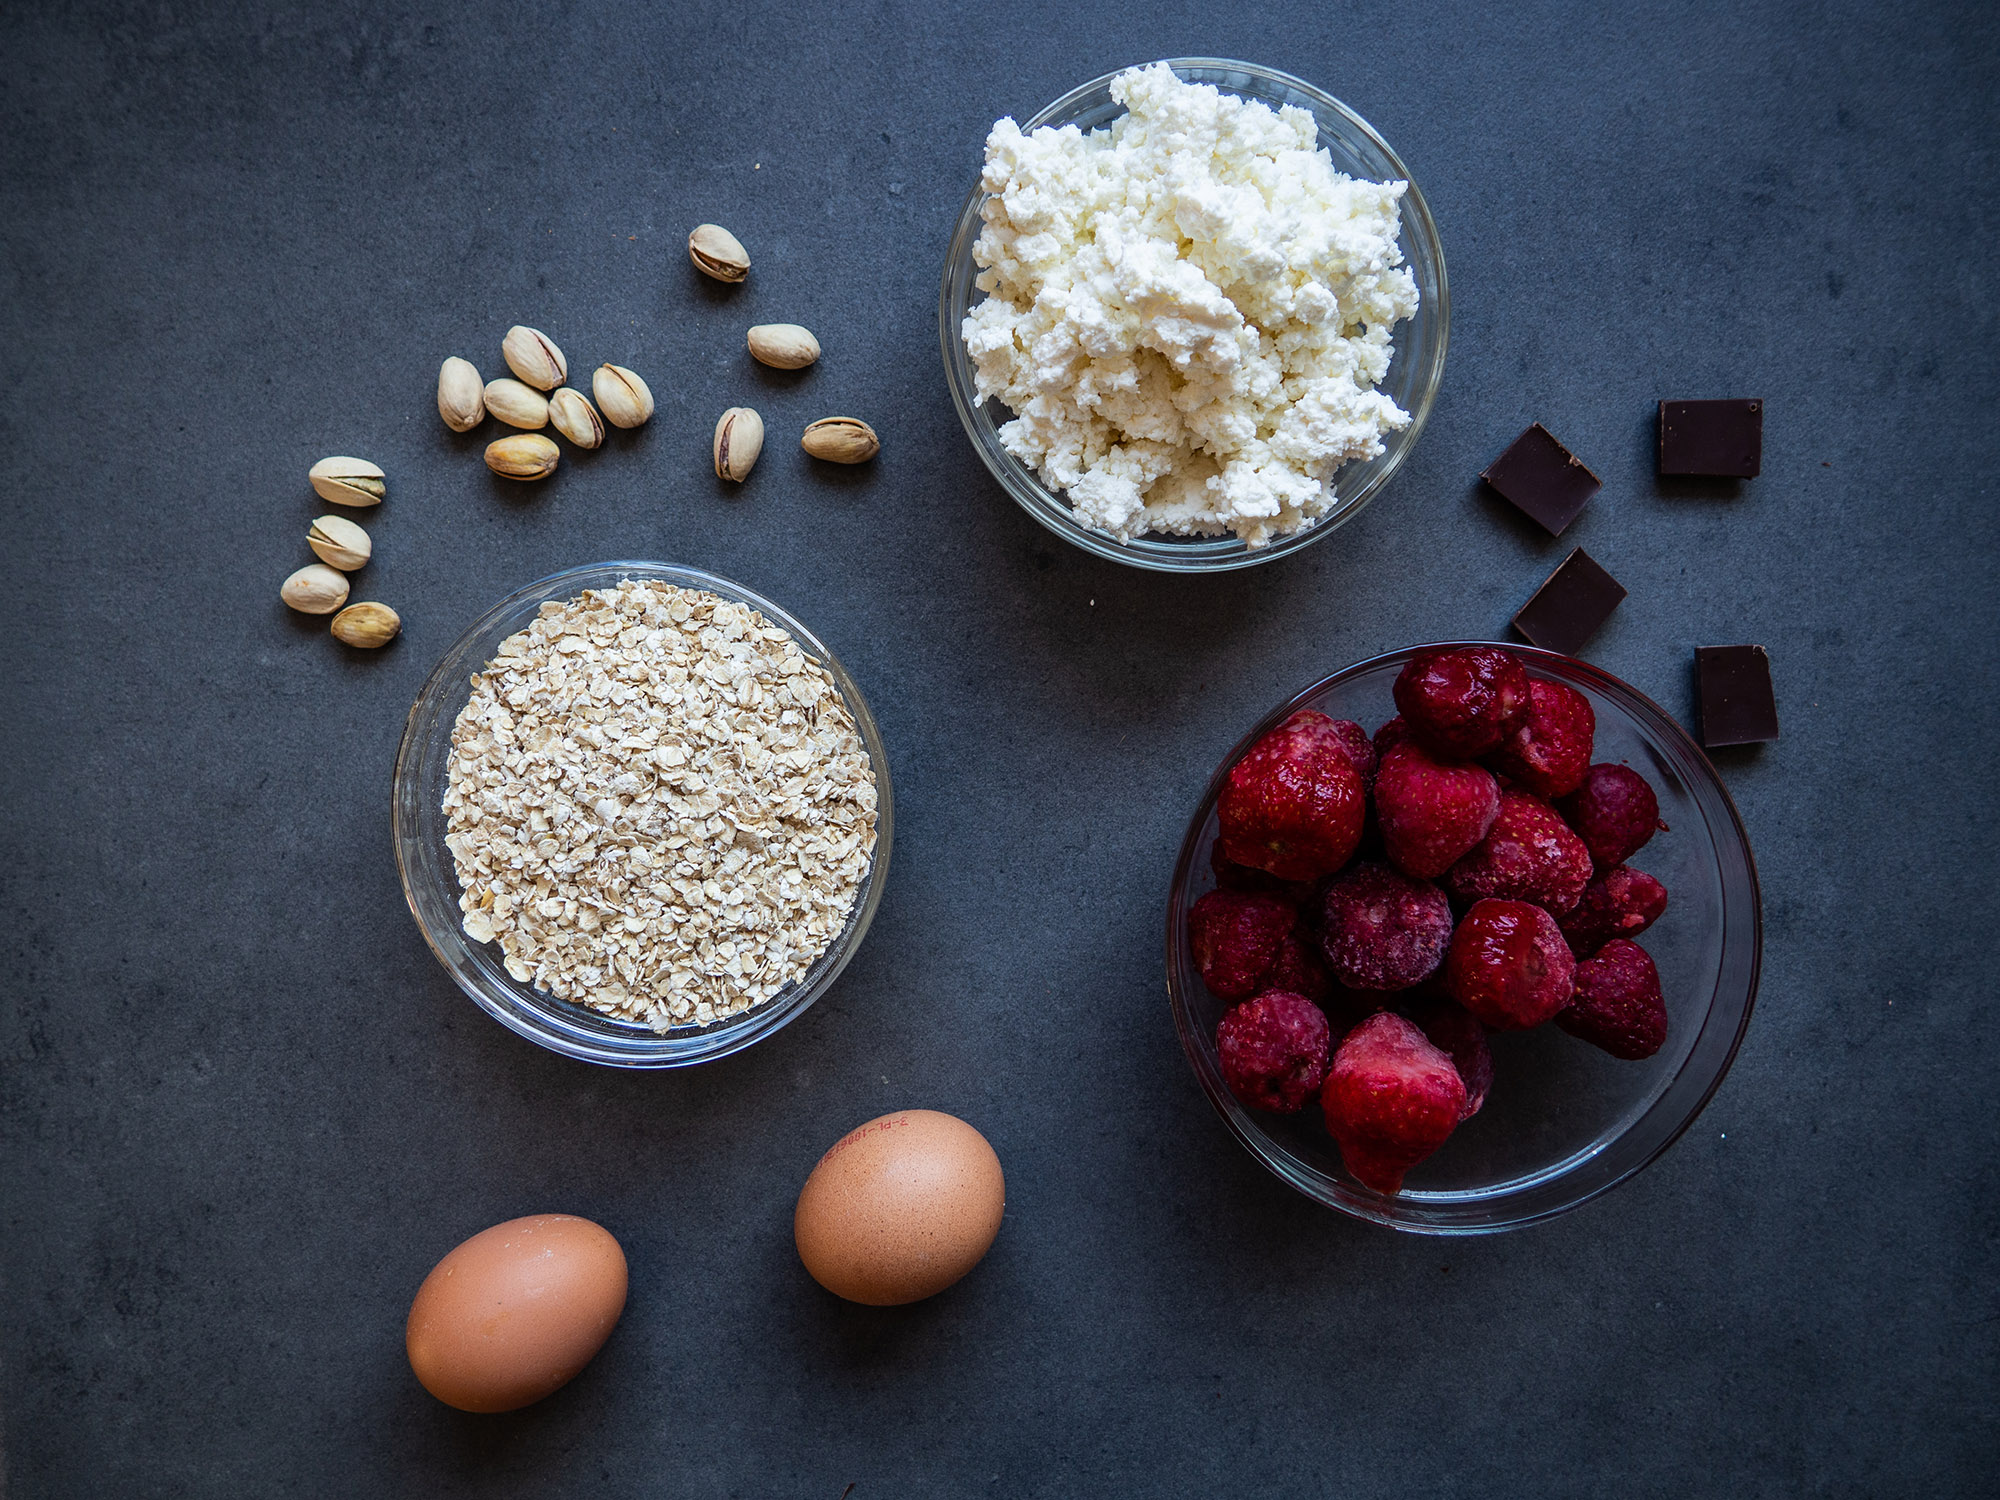 oat flakes, eggs, cottage cheese, strawberries